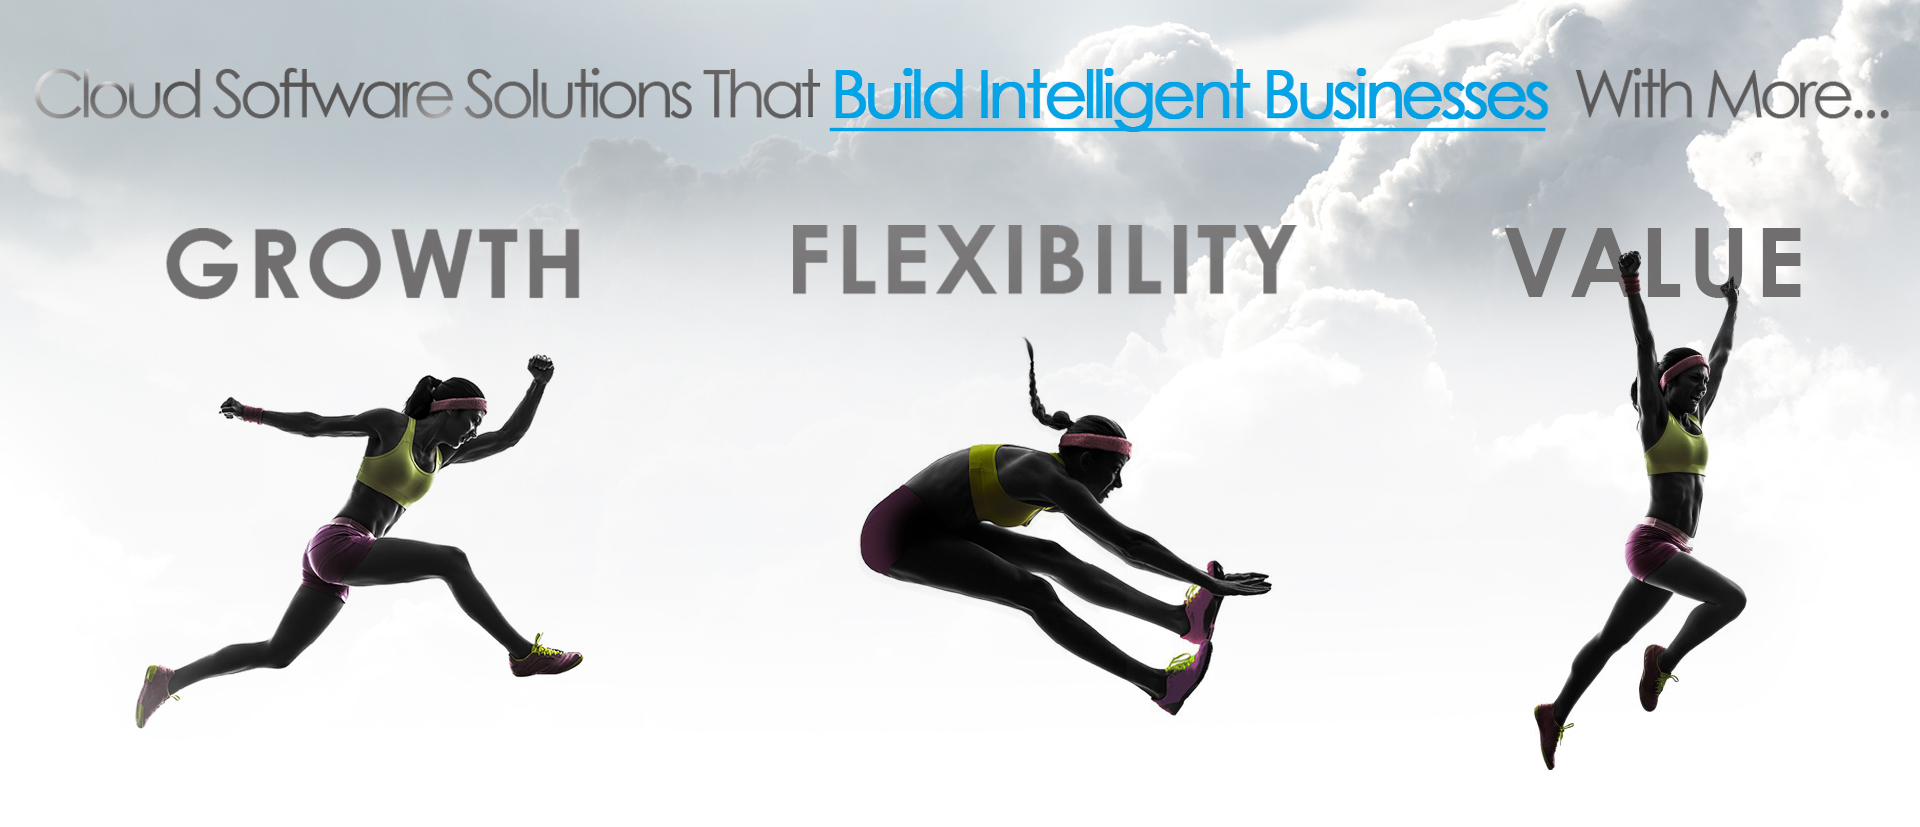 Sporting image illustrating that Intelligent businesses have Growth, Flexibility and Value